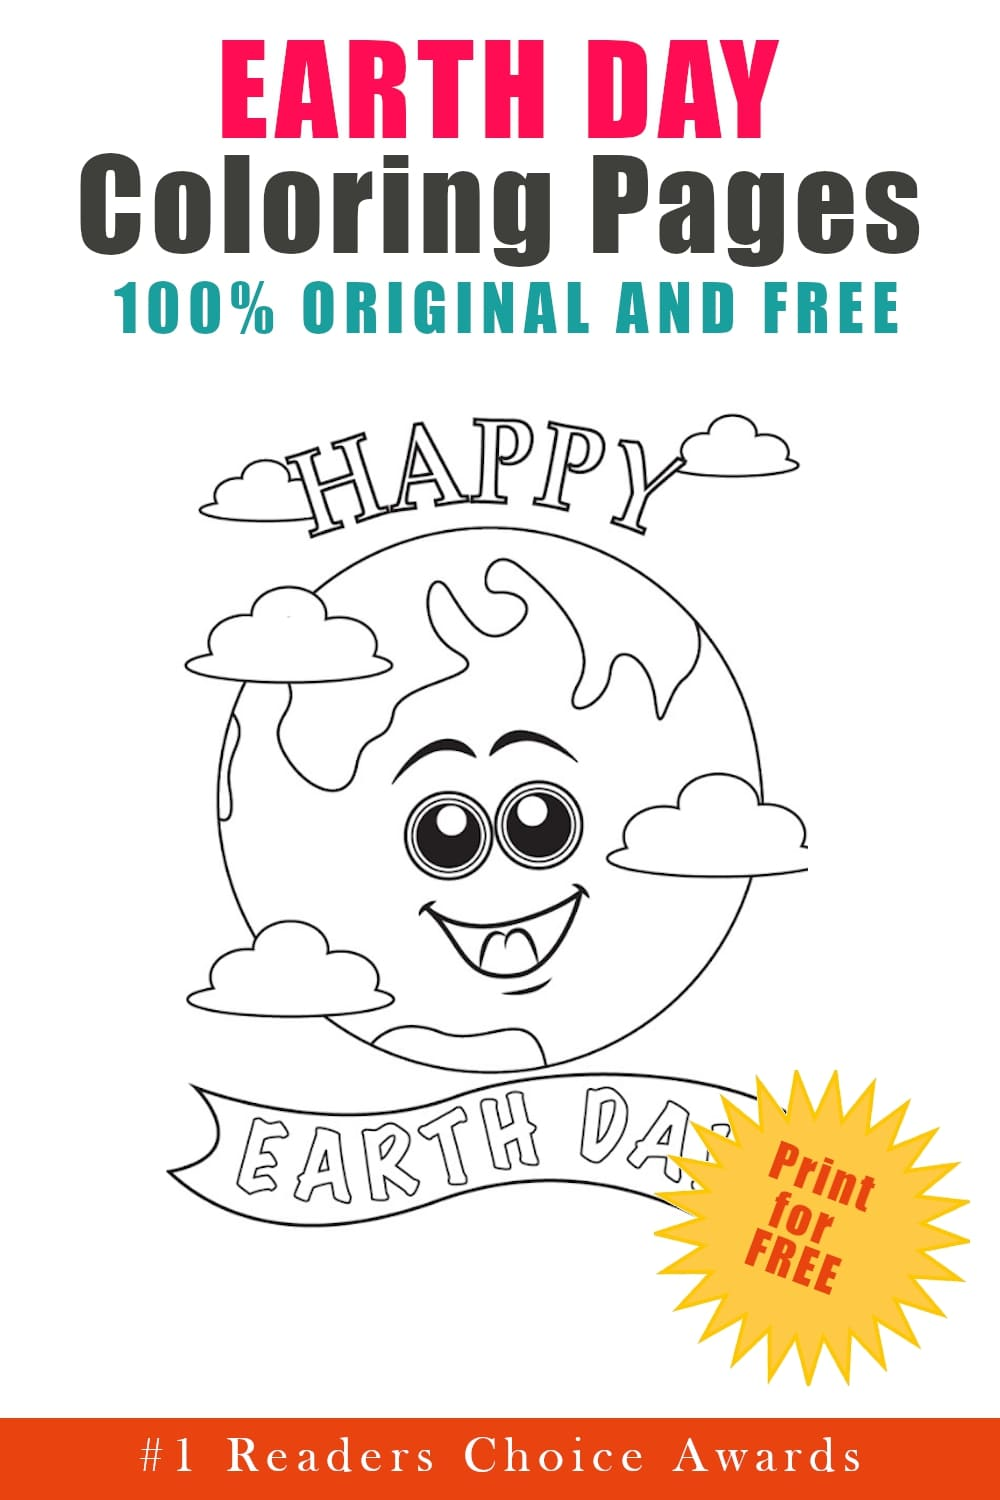 original free earth day coloring pages